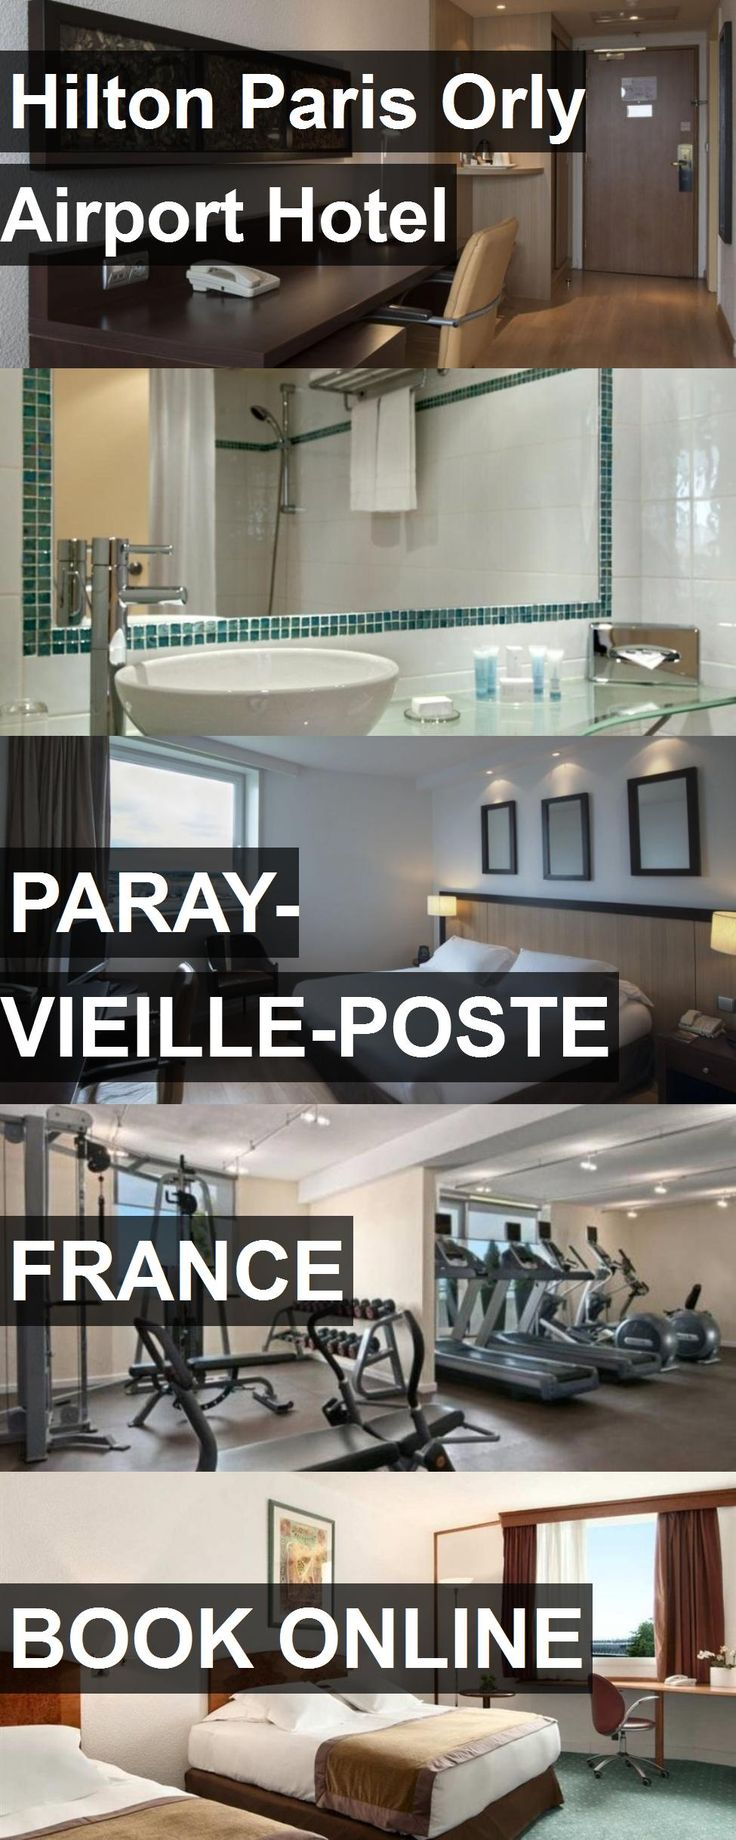 Hotel Hilton Paris Orly Airport Hotel in Paray-Vieille-Poste, France. For more information, photos, reviews and best prices please follow the link. #France #Paray-Vieille-Poste #HiltonParisOrlyAirportHotel #hotel #travel #vacation